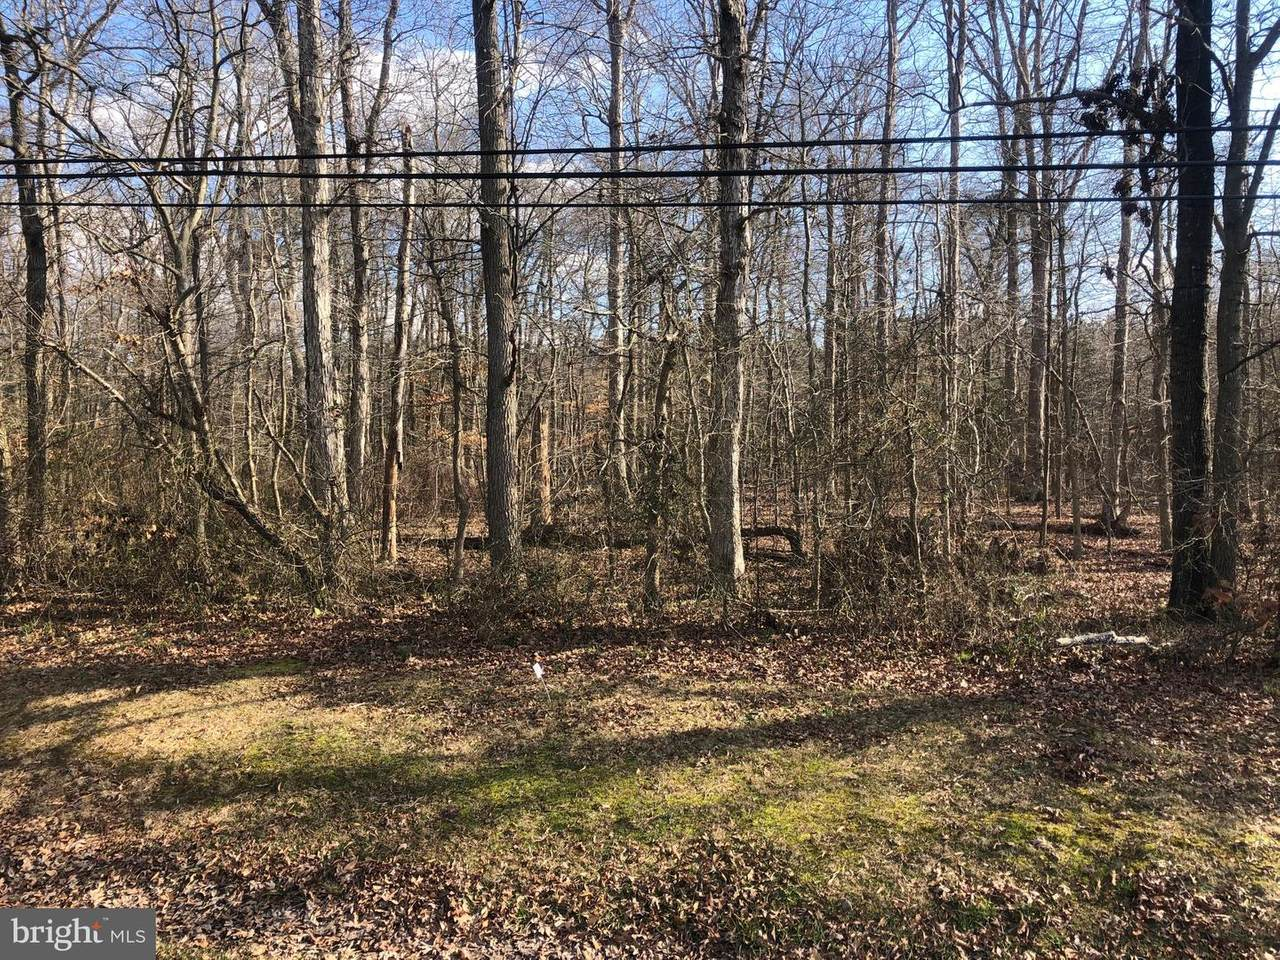 00 Mt Holly - Enm Road - Photo 1